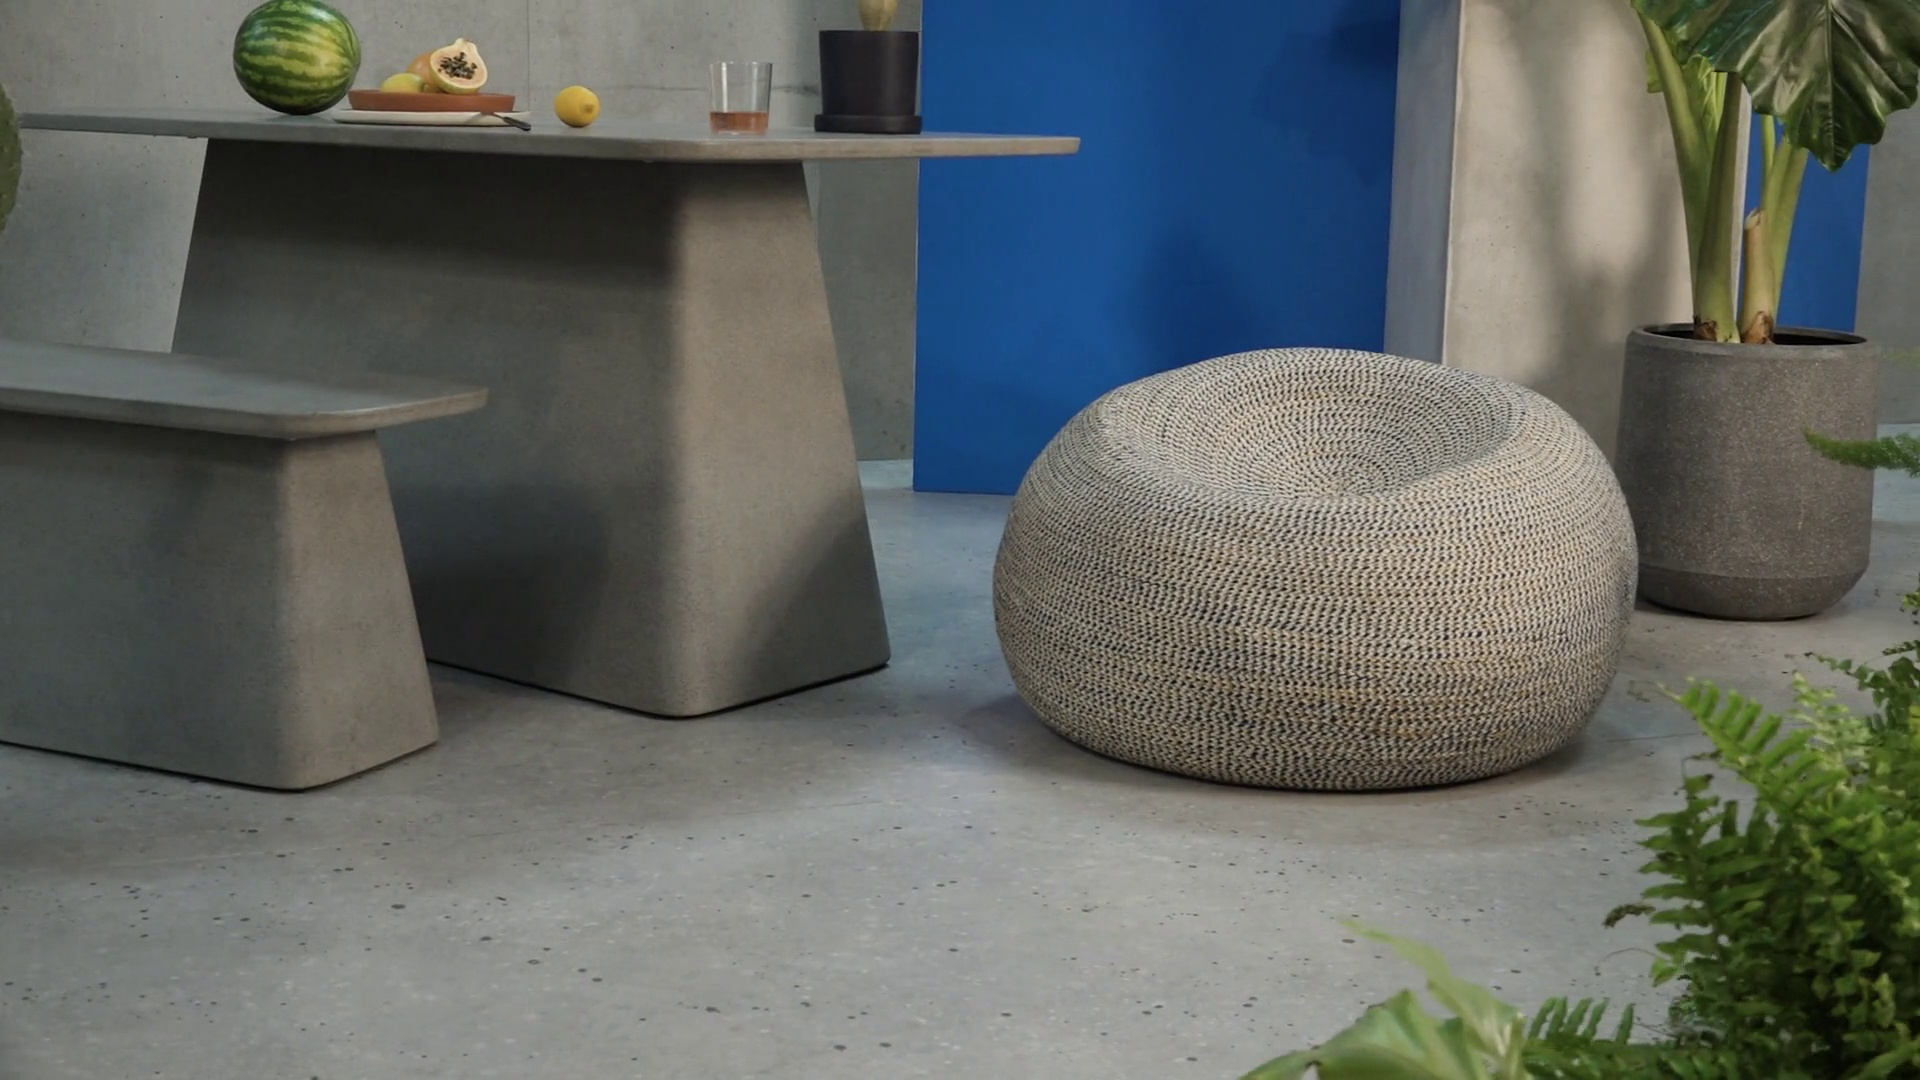 Pouf Exterieur Made Pryia Outdoor Cocoon Bean Seat Multi Prussian Blue And Mustard Yellow